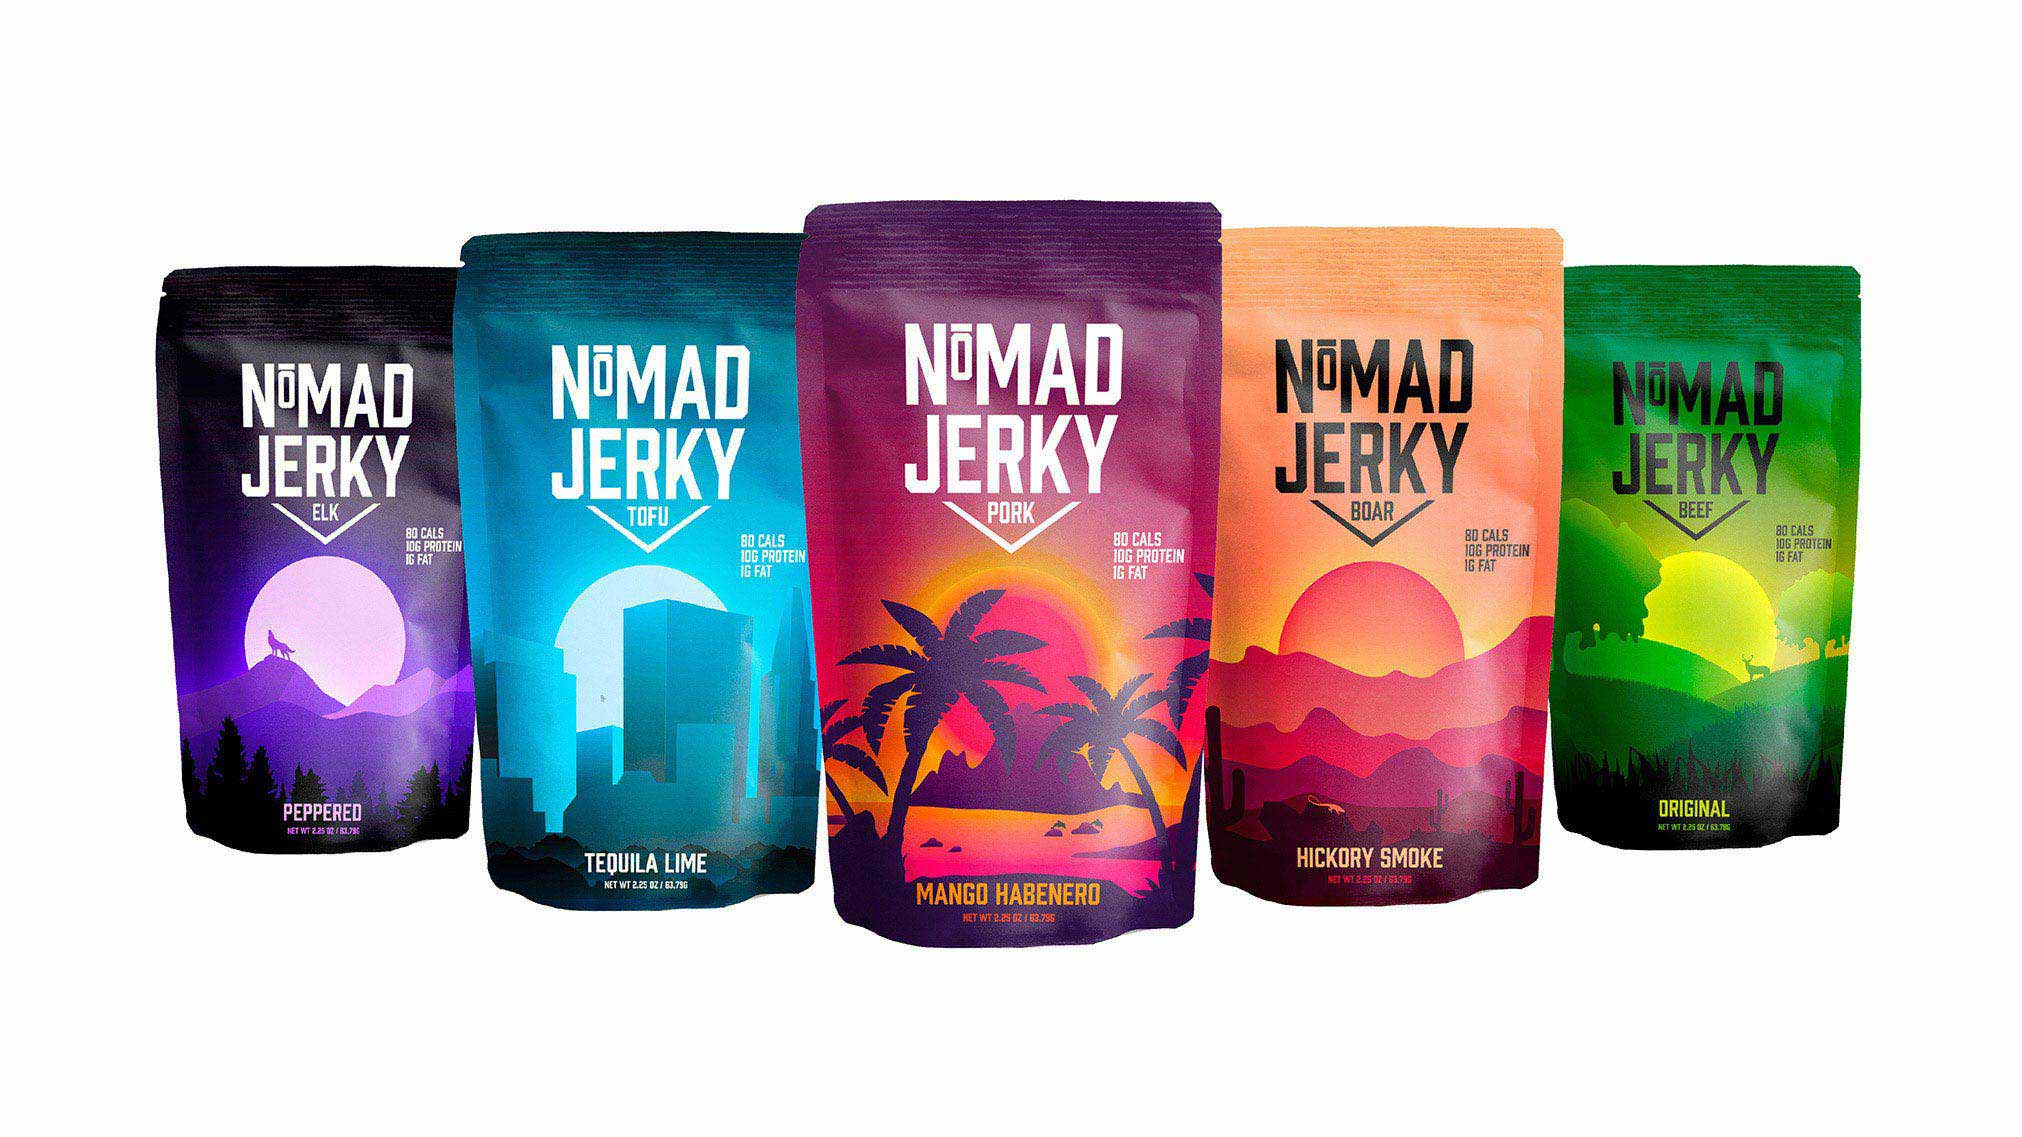 NoMAD Jerky is for thrill seekers, adventurers or just someone who wants a snack. Anyone with dietary and religious restrictions have an option too. This project was featured in RGD's #heyRGD contest for January.